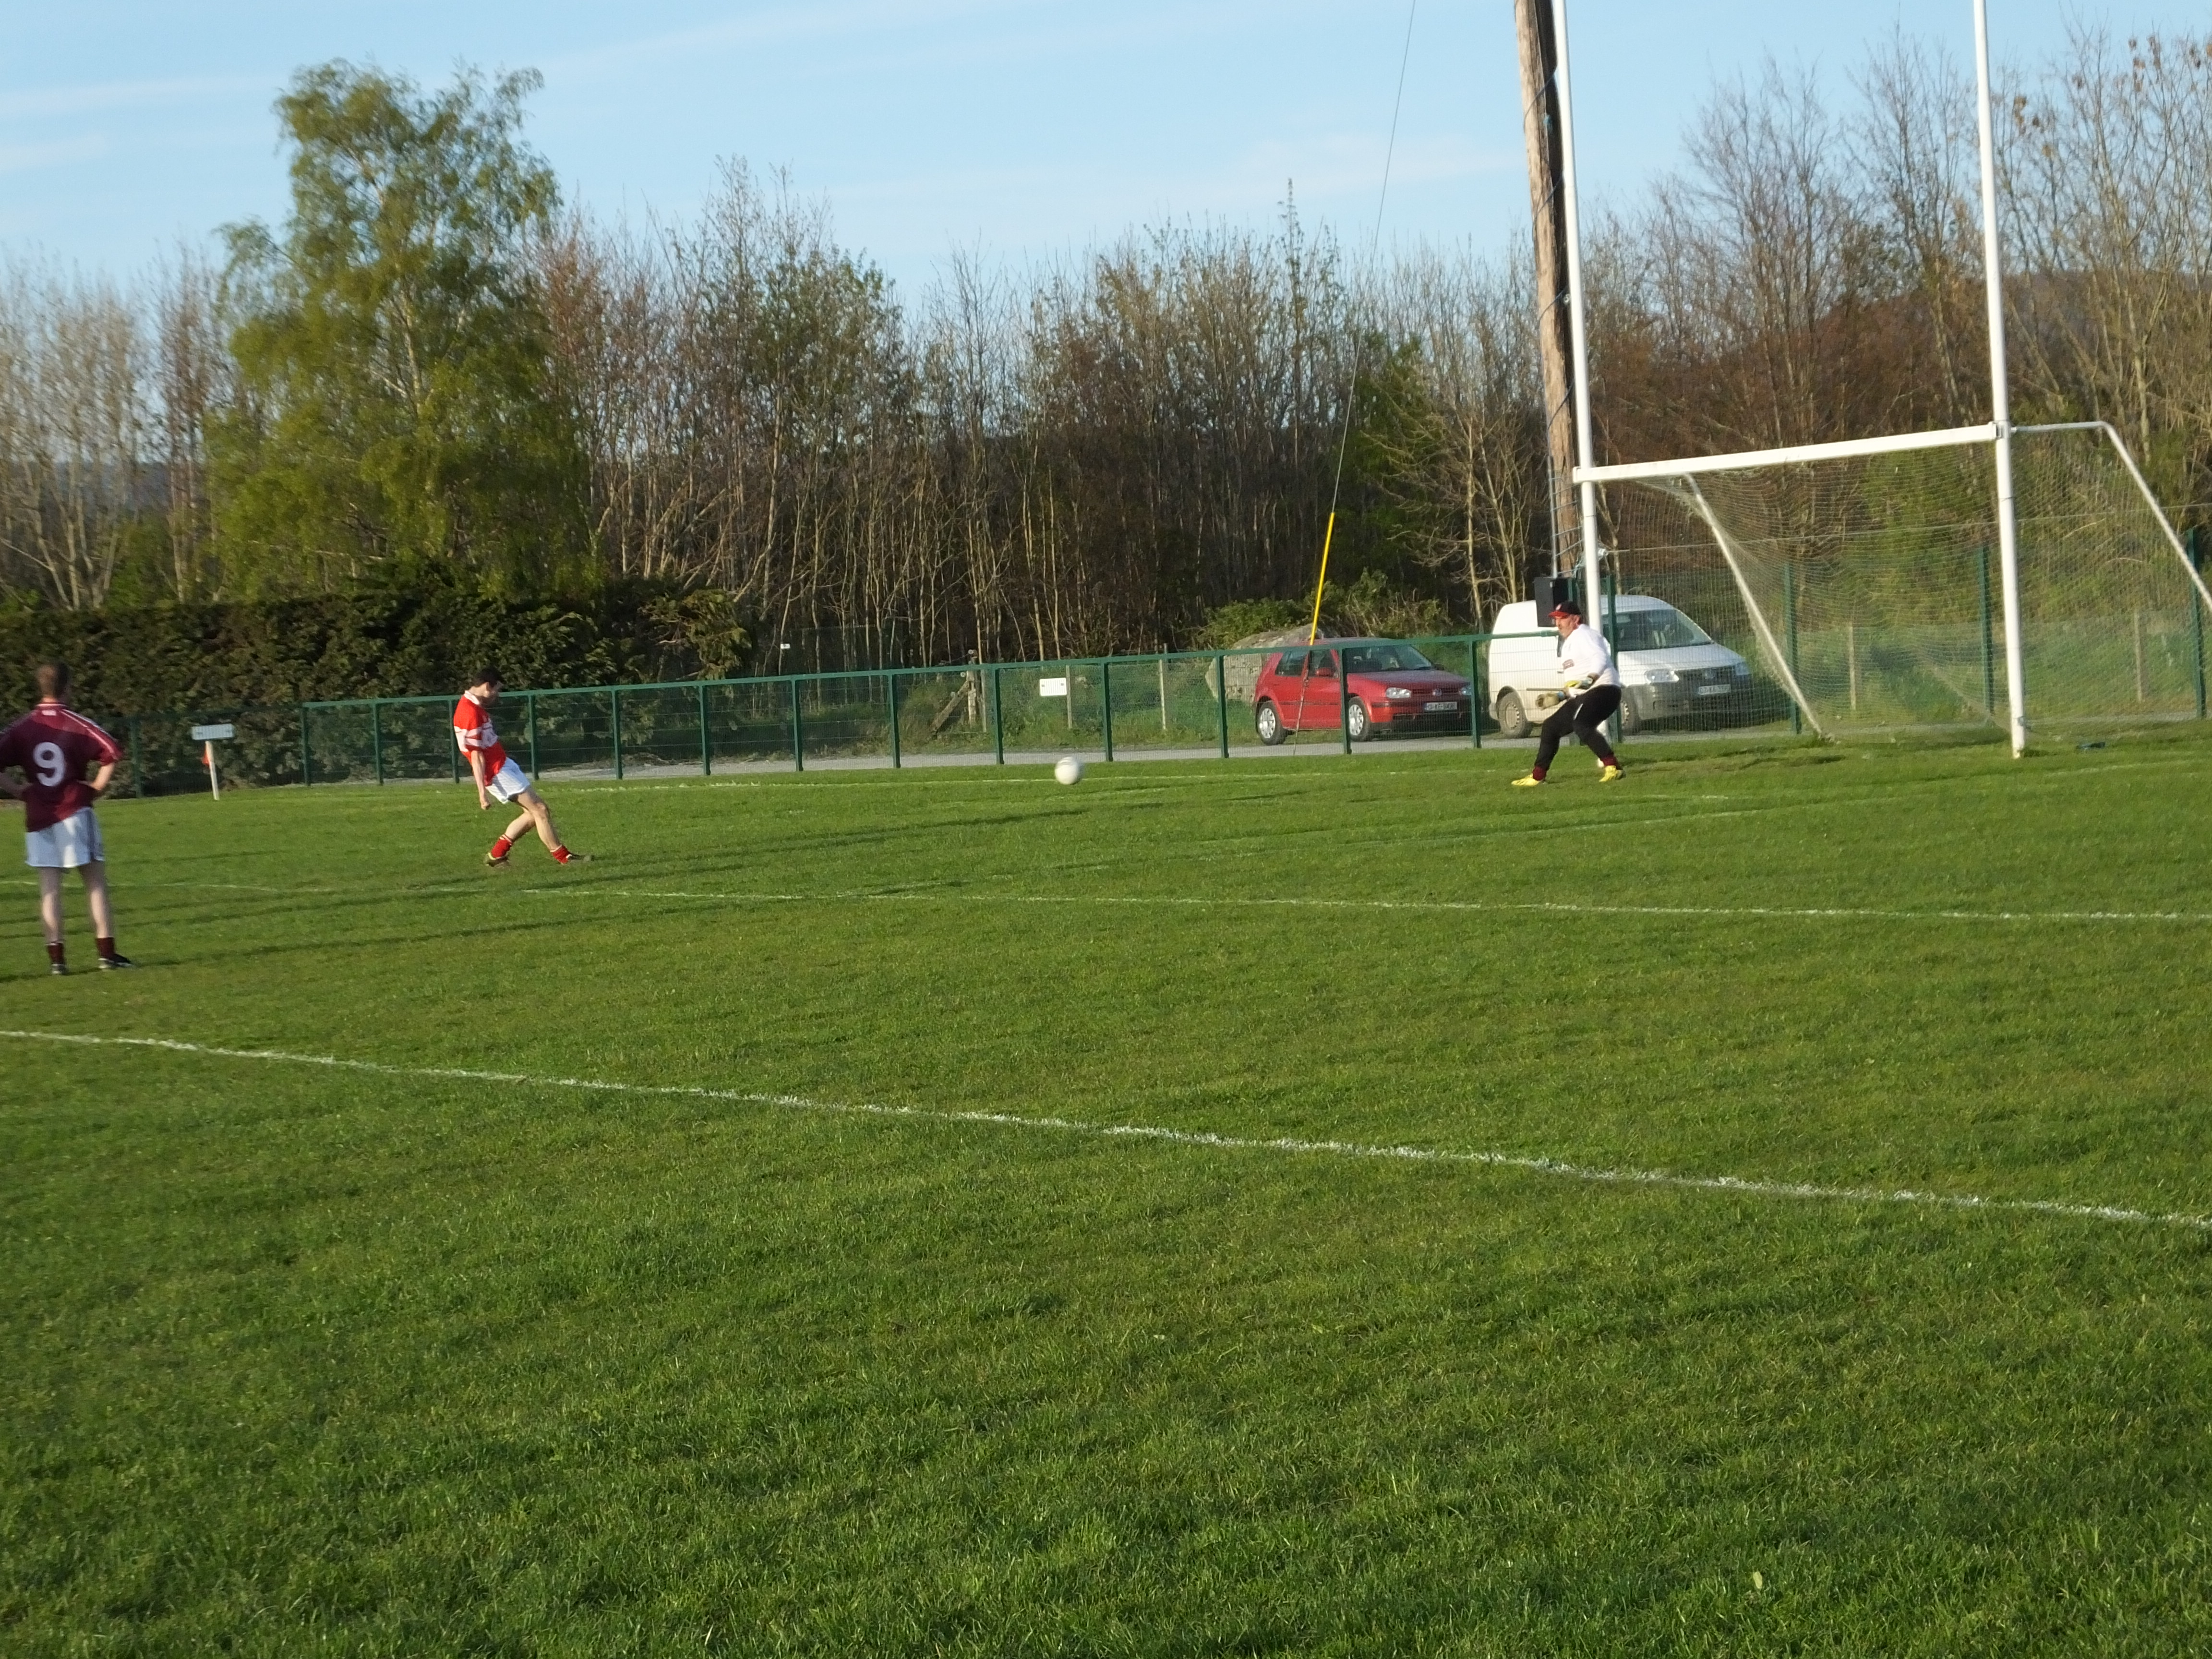 Penalty kick for Valleymount